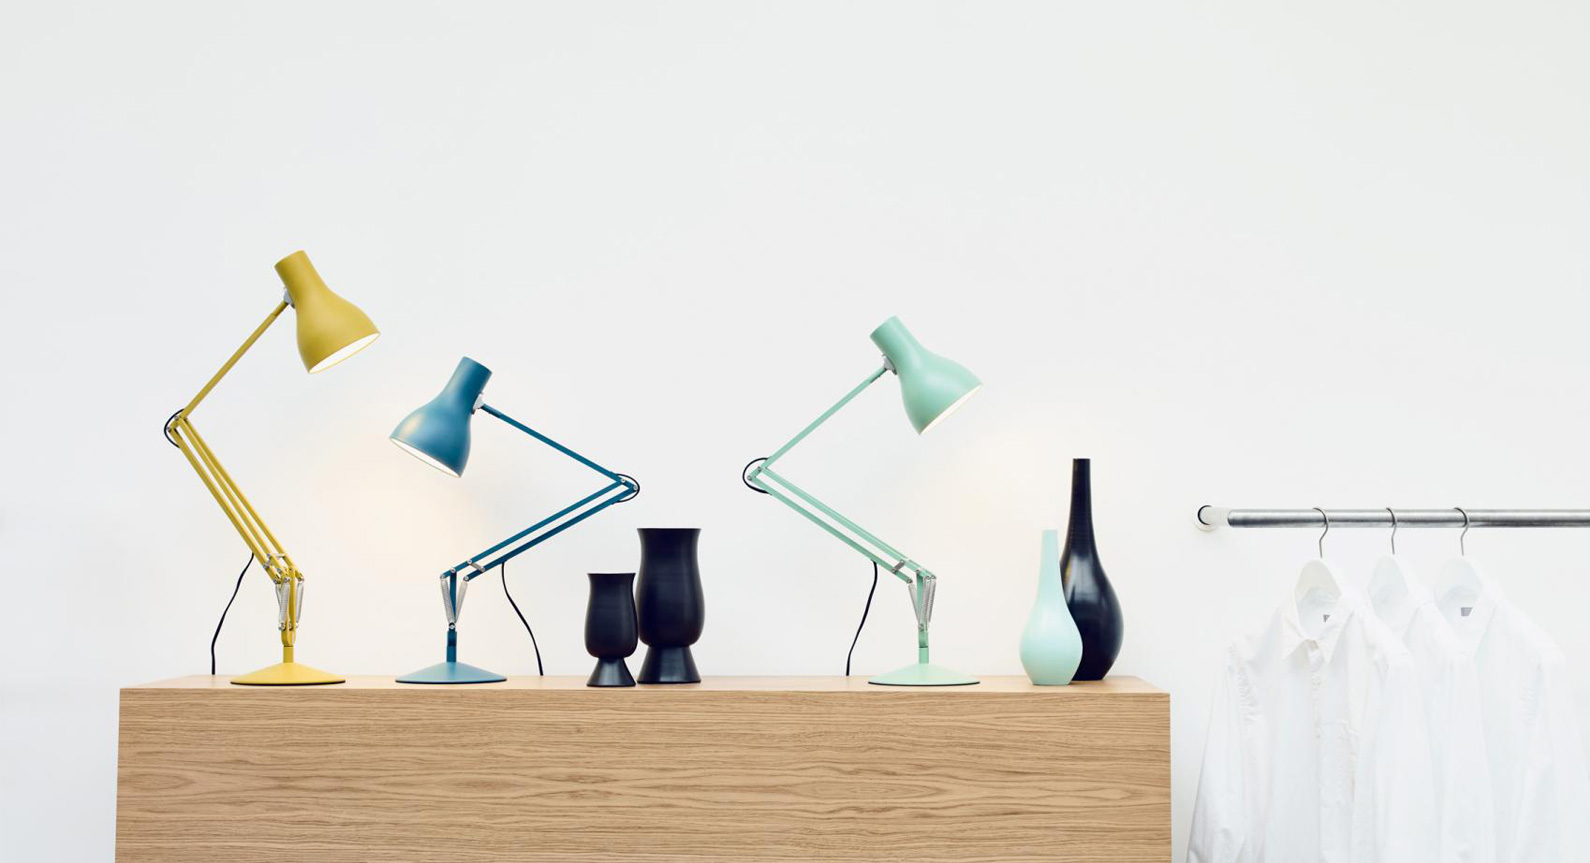 Why There's More To Anglepoise Than You May Think